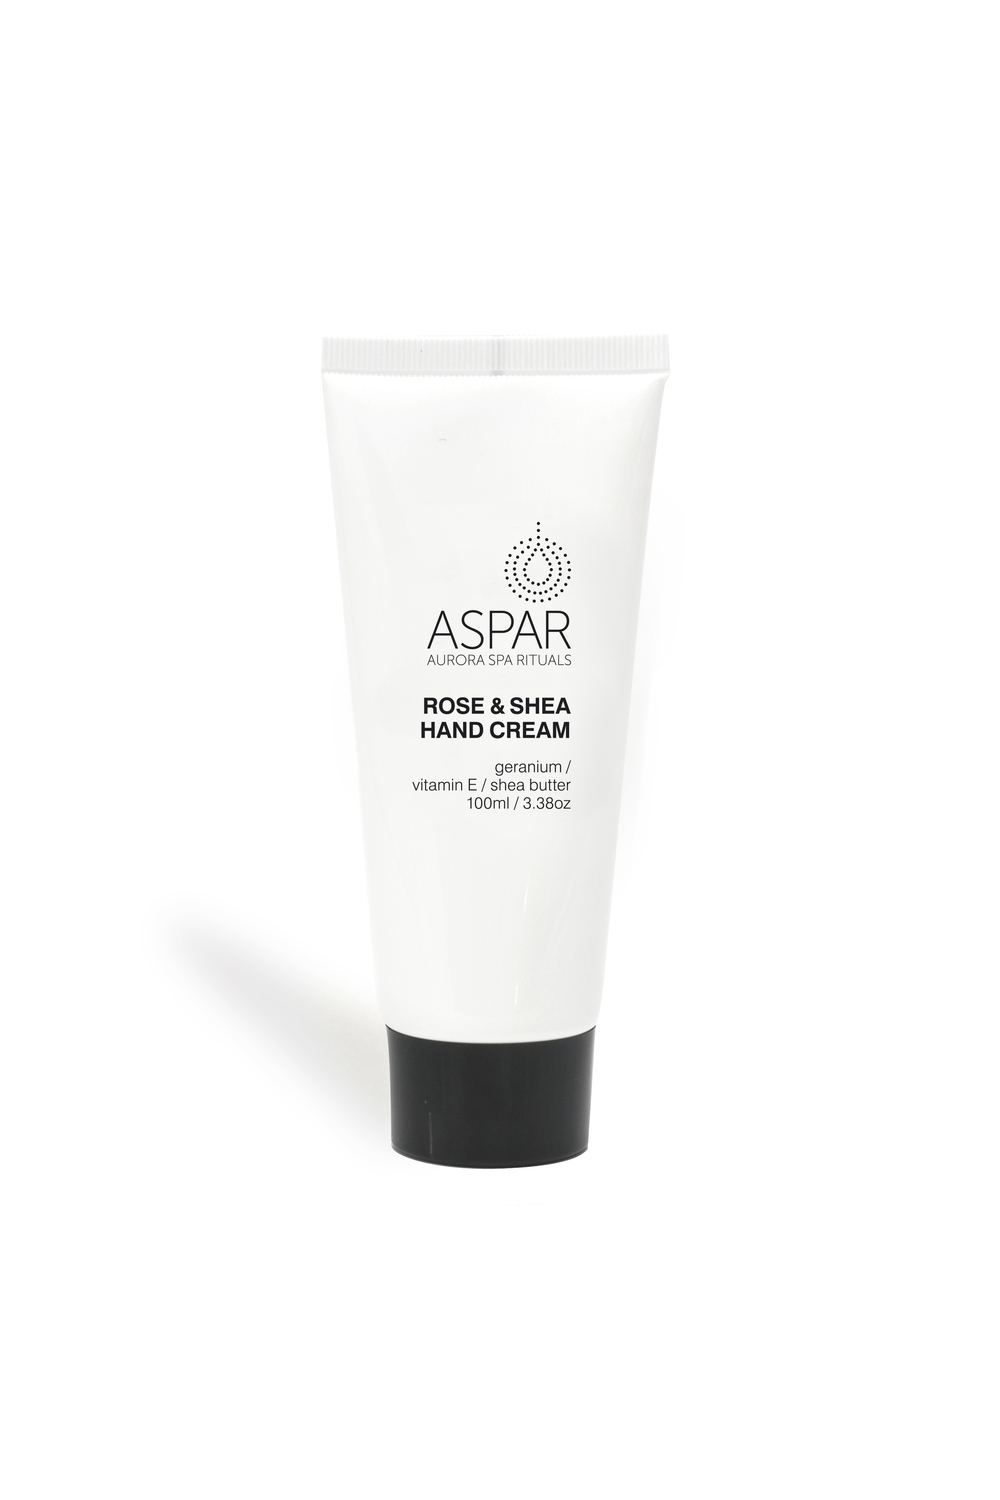 2. Handcream $28 - ASPAR